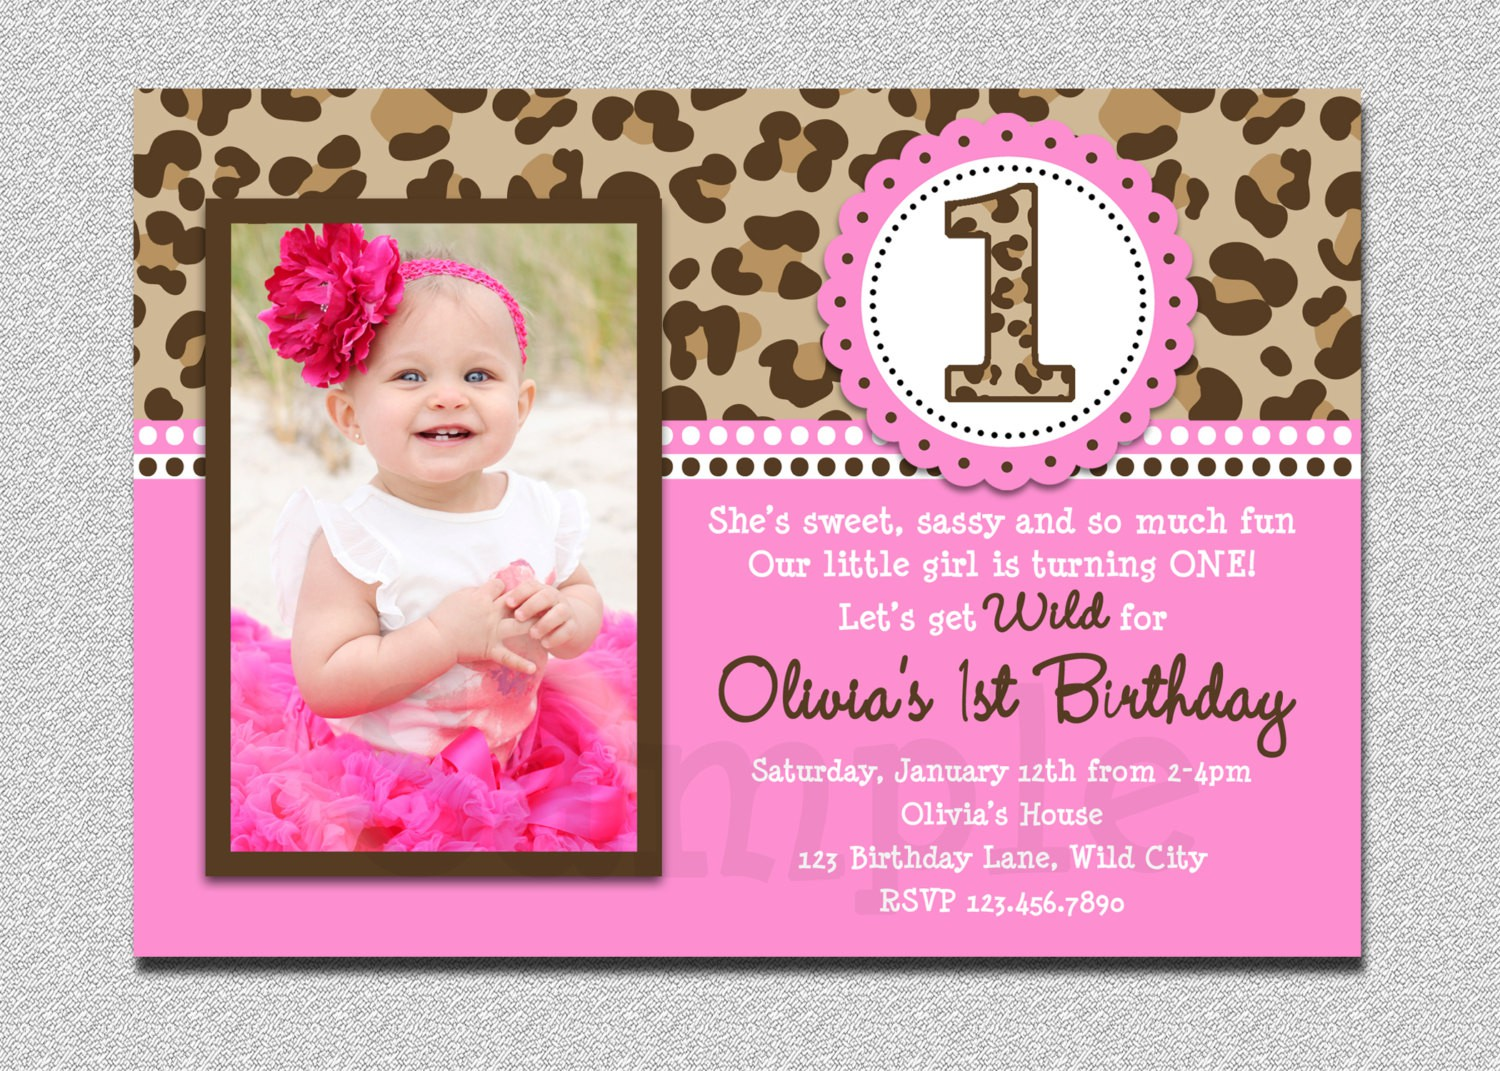 baby girl birthday invitation card design ; birthday-invitation-cards-for-baby-girl